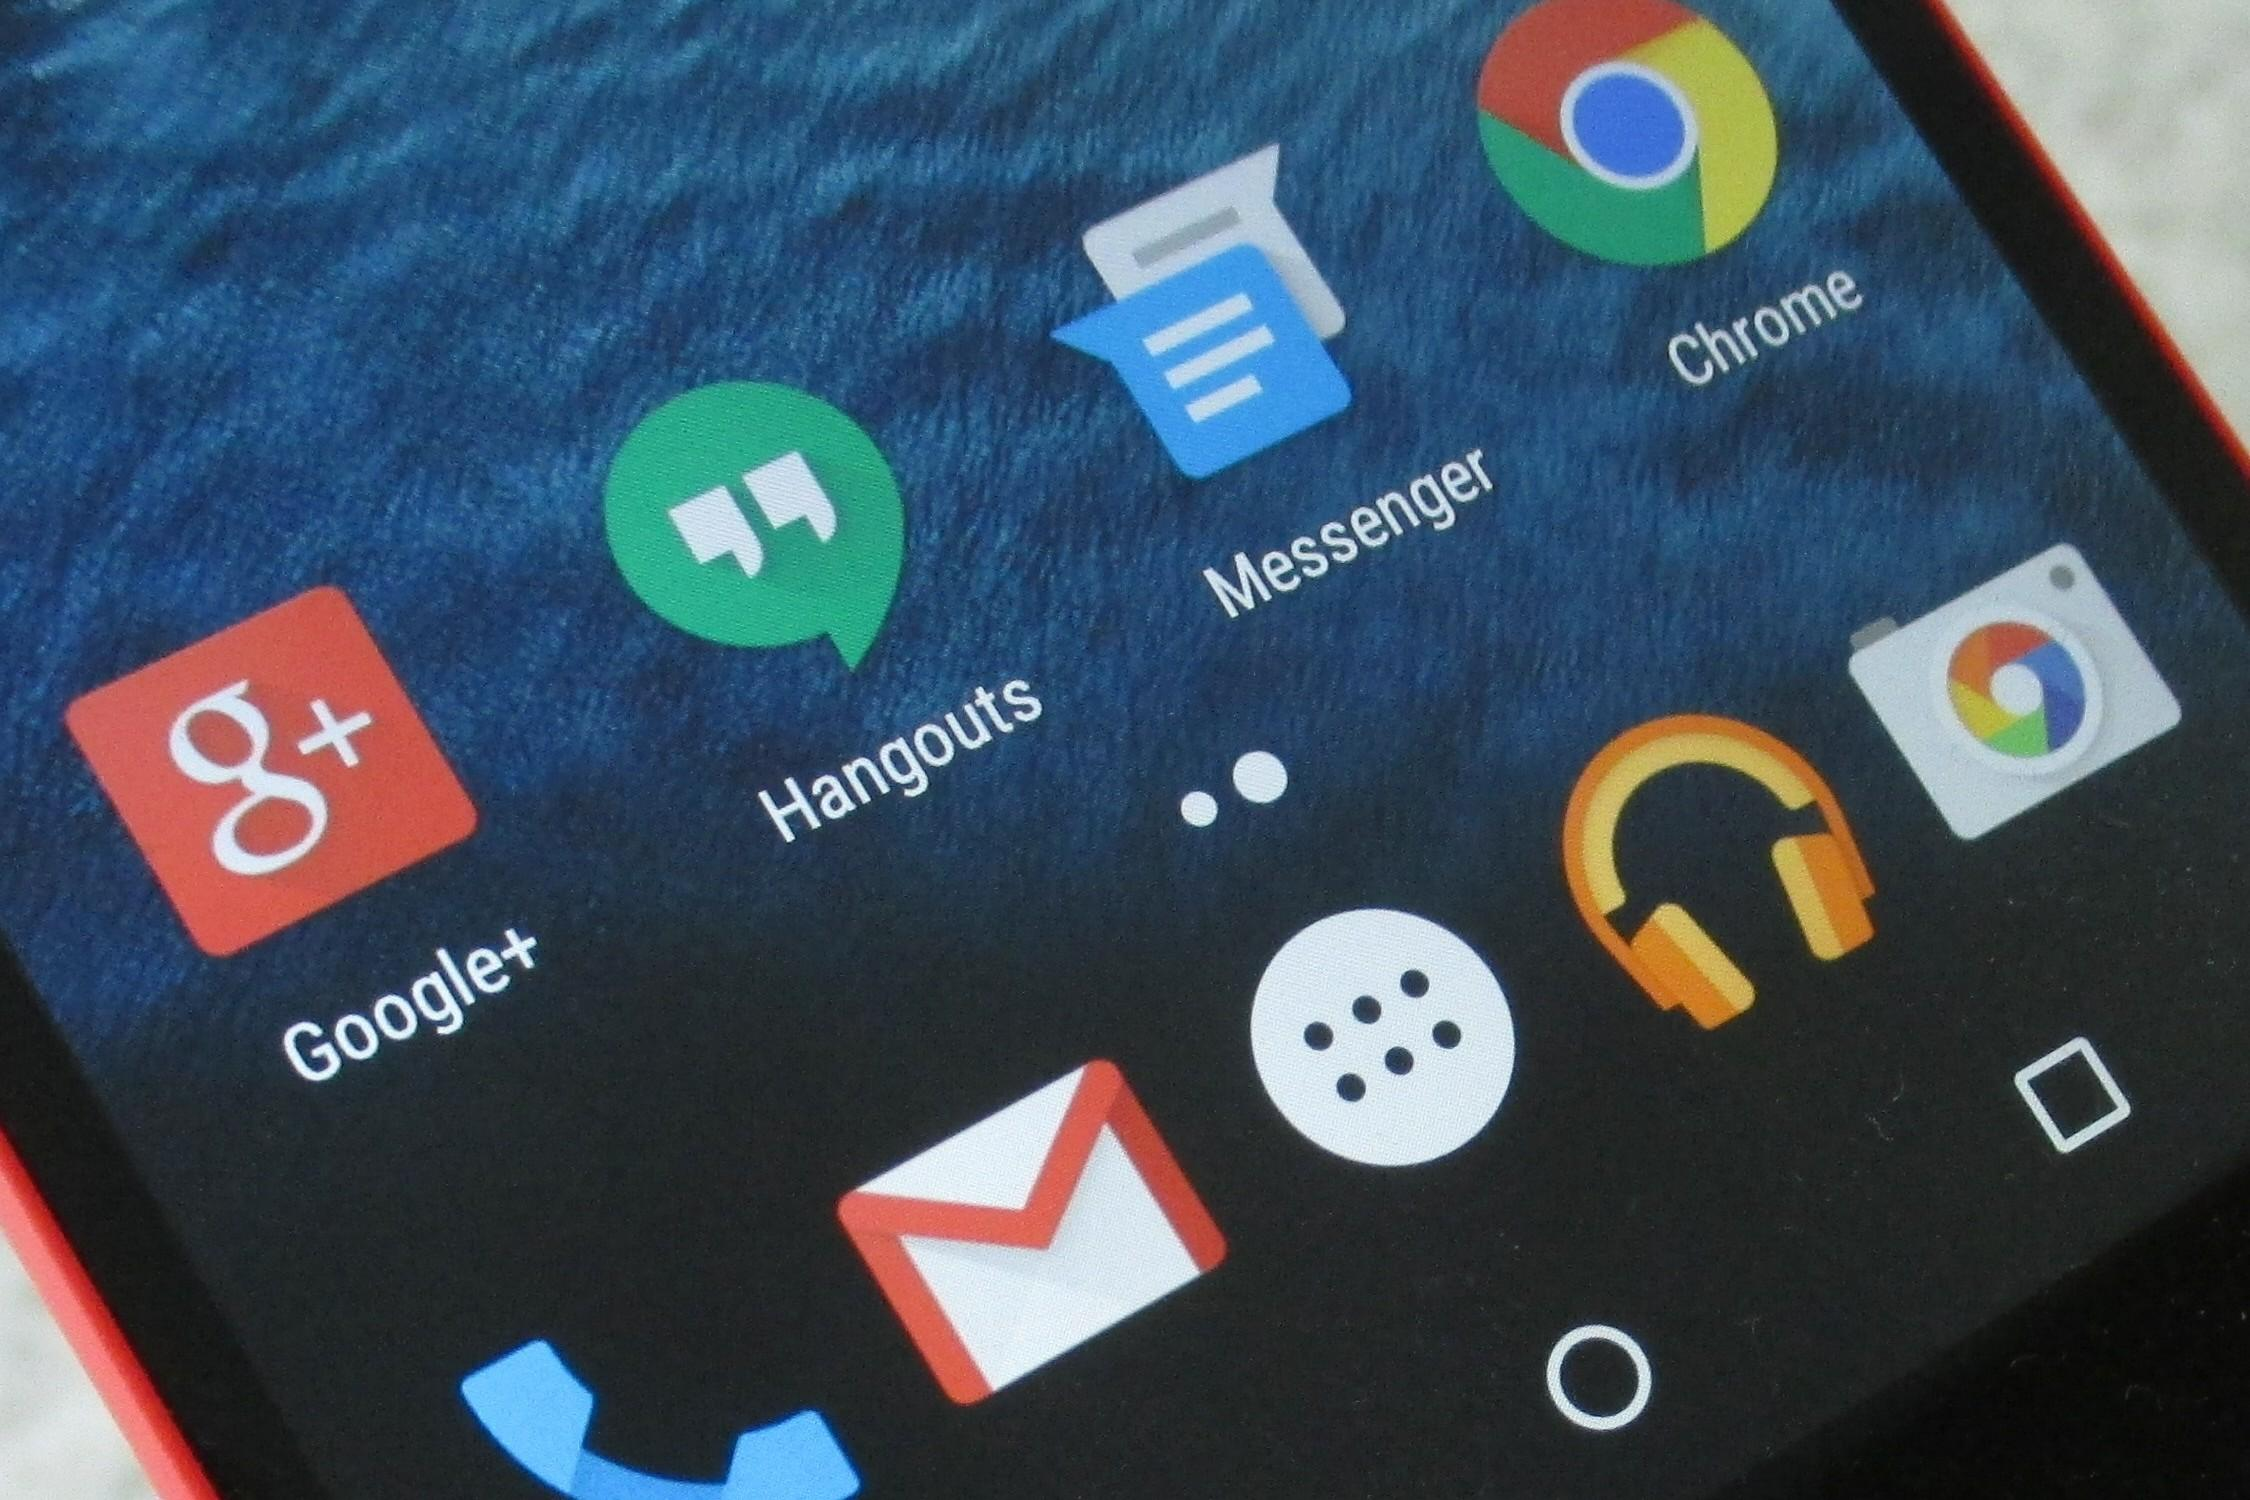 Android OEMs no longer required to preinstall Hangouts on their smartphones